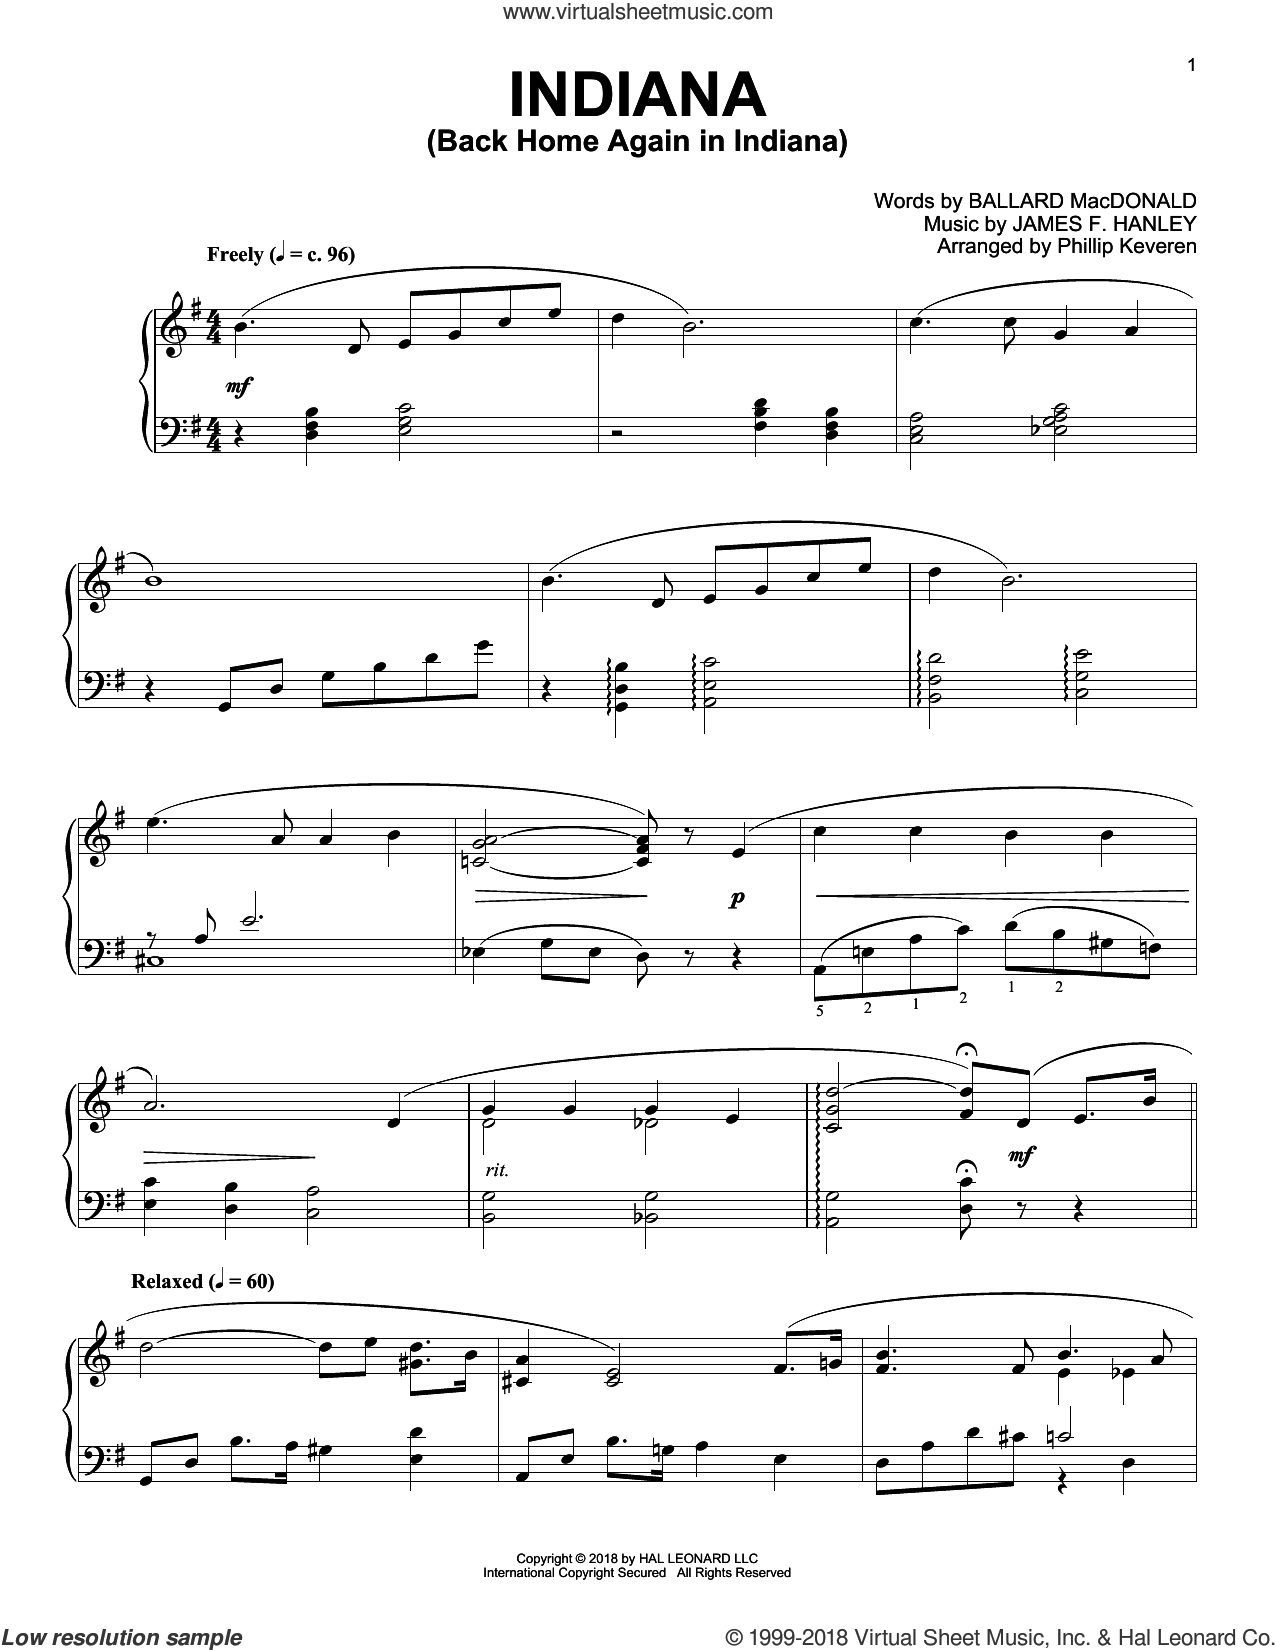 Indiana (Back Home Again In Indiana) [Jazz version] (arr. Phillip Keveren) sheet music for piano solo by Ballard MacDonald, Phillip Keveren and James Hanley, intermediate skill level